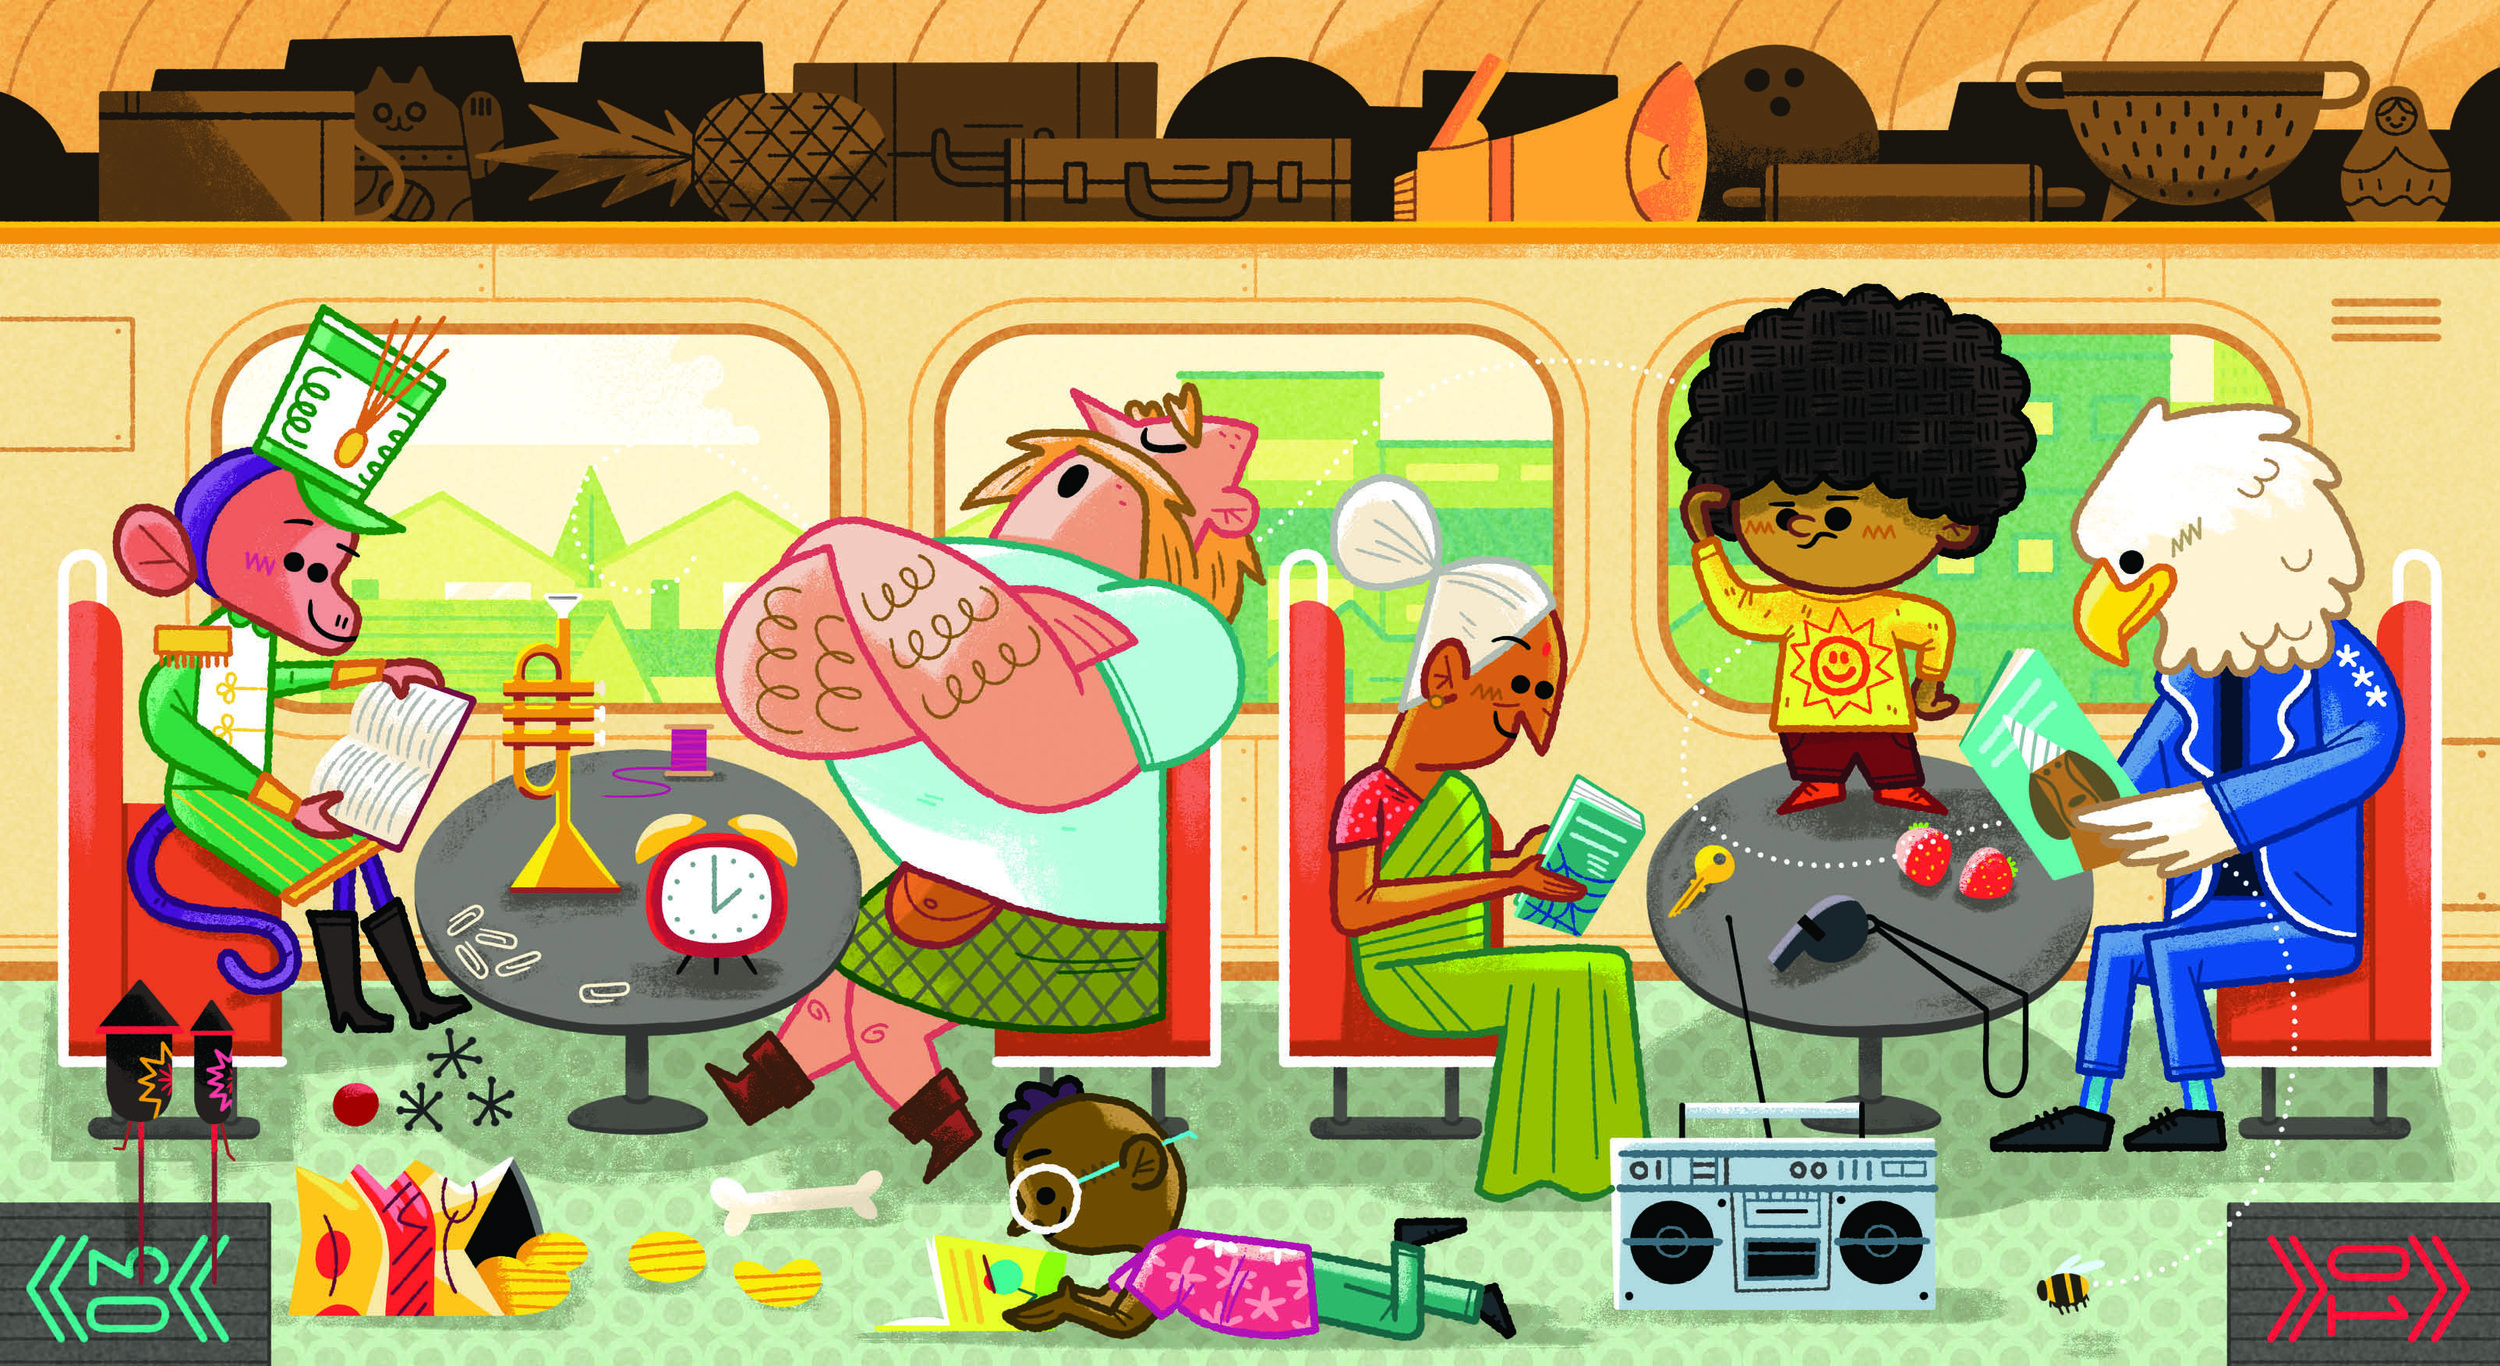 Preview All Aboard - Get a quick glimpse of Andrew Kolb's new board book!